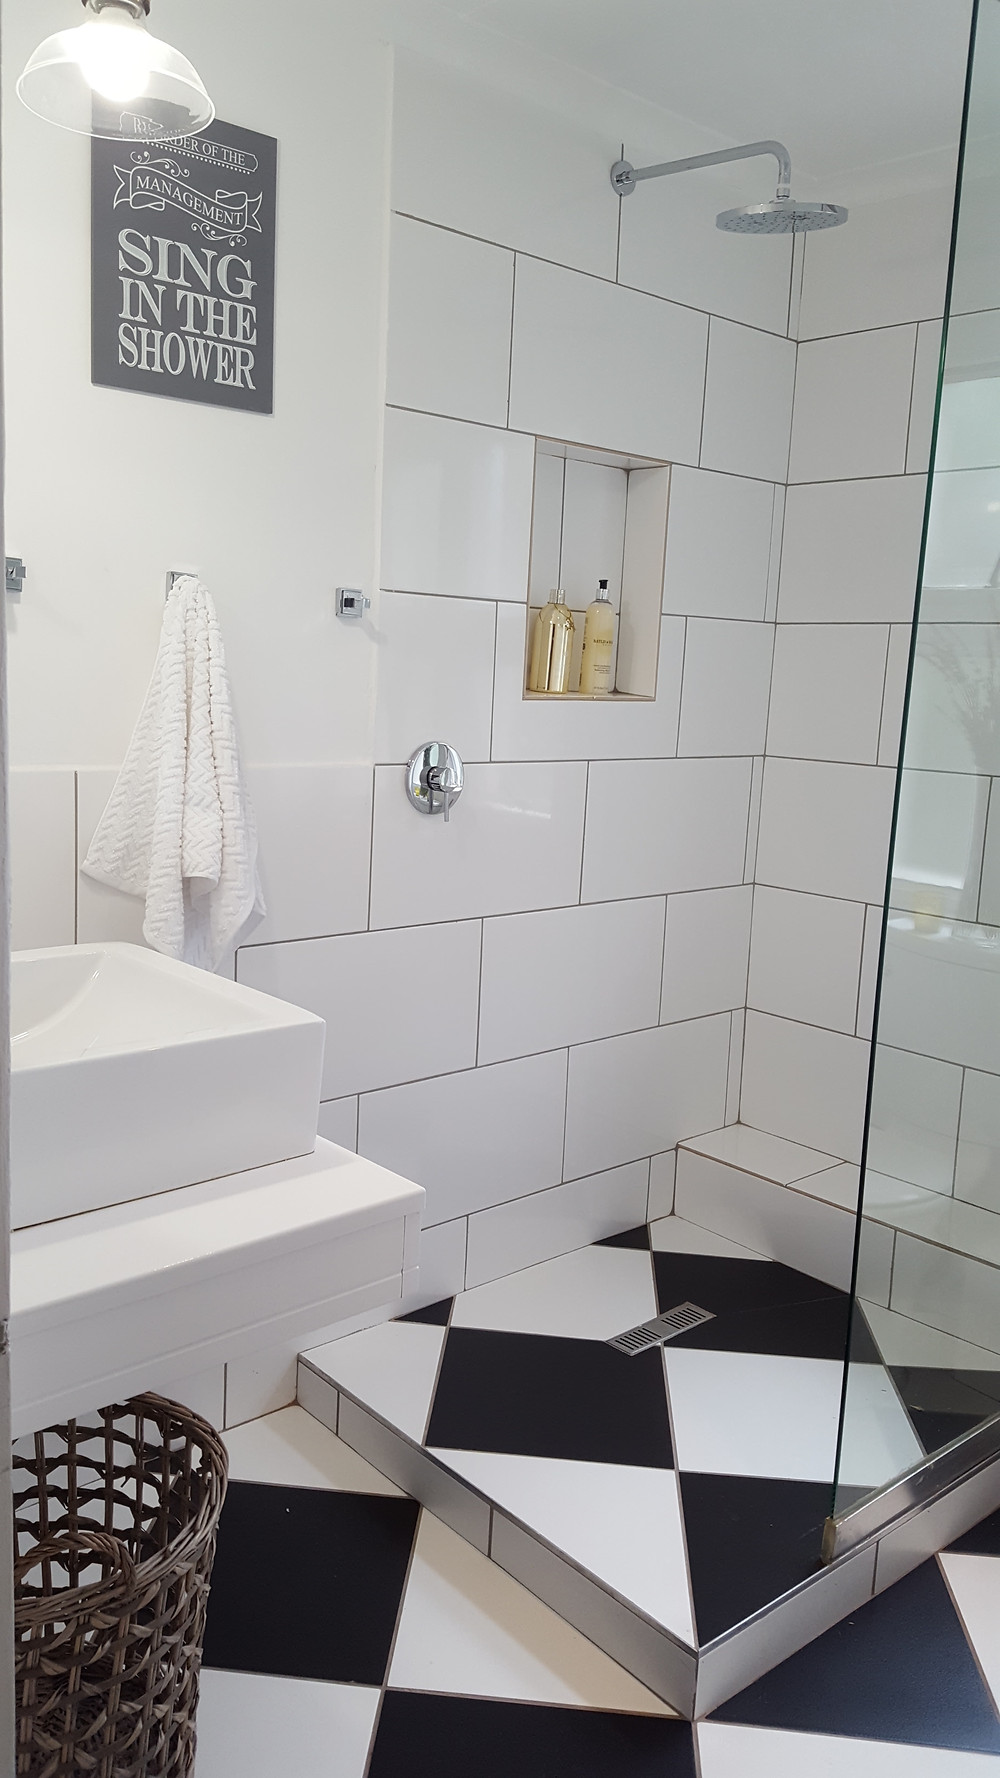 This bathroom makes use of both an over-sized metro wall tile and large floor tiles to create diagonal lines, both of which make the space feel bigger. The black and white creates interest and echoes and classic look